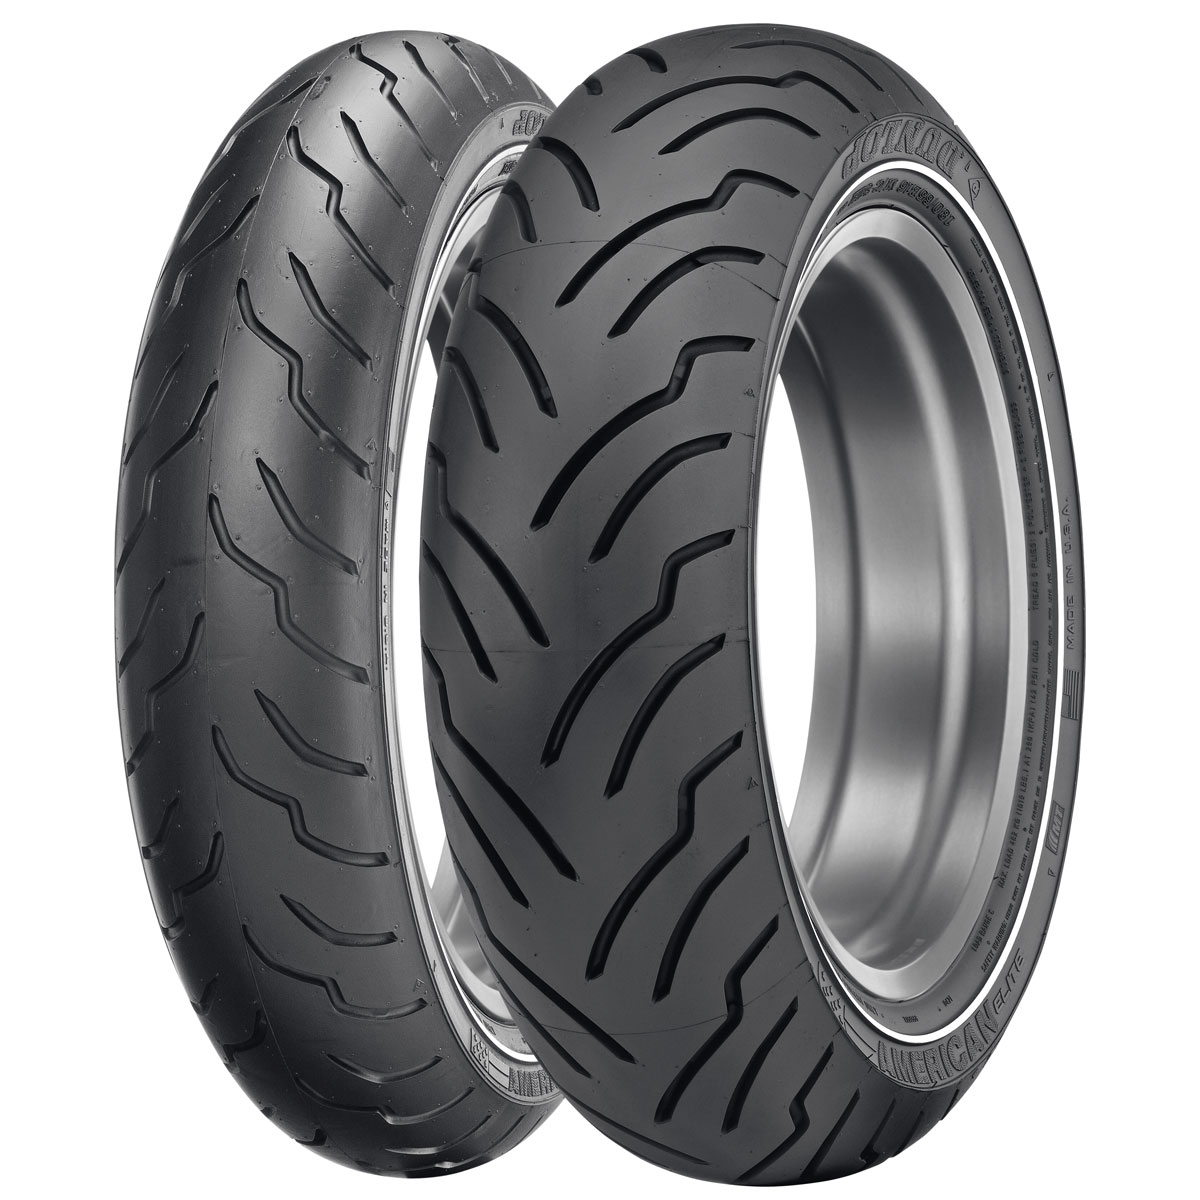 Dunlop American Elite 180/65B16 Narrow Whitewall Rear Tire